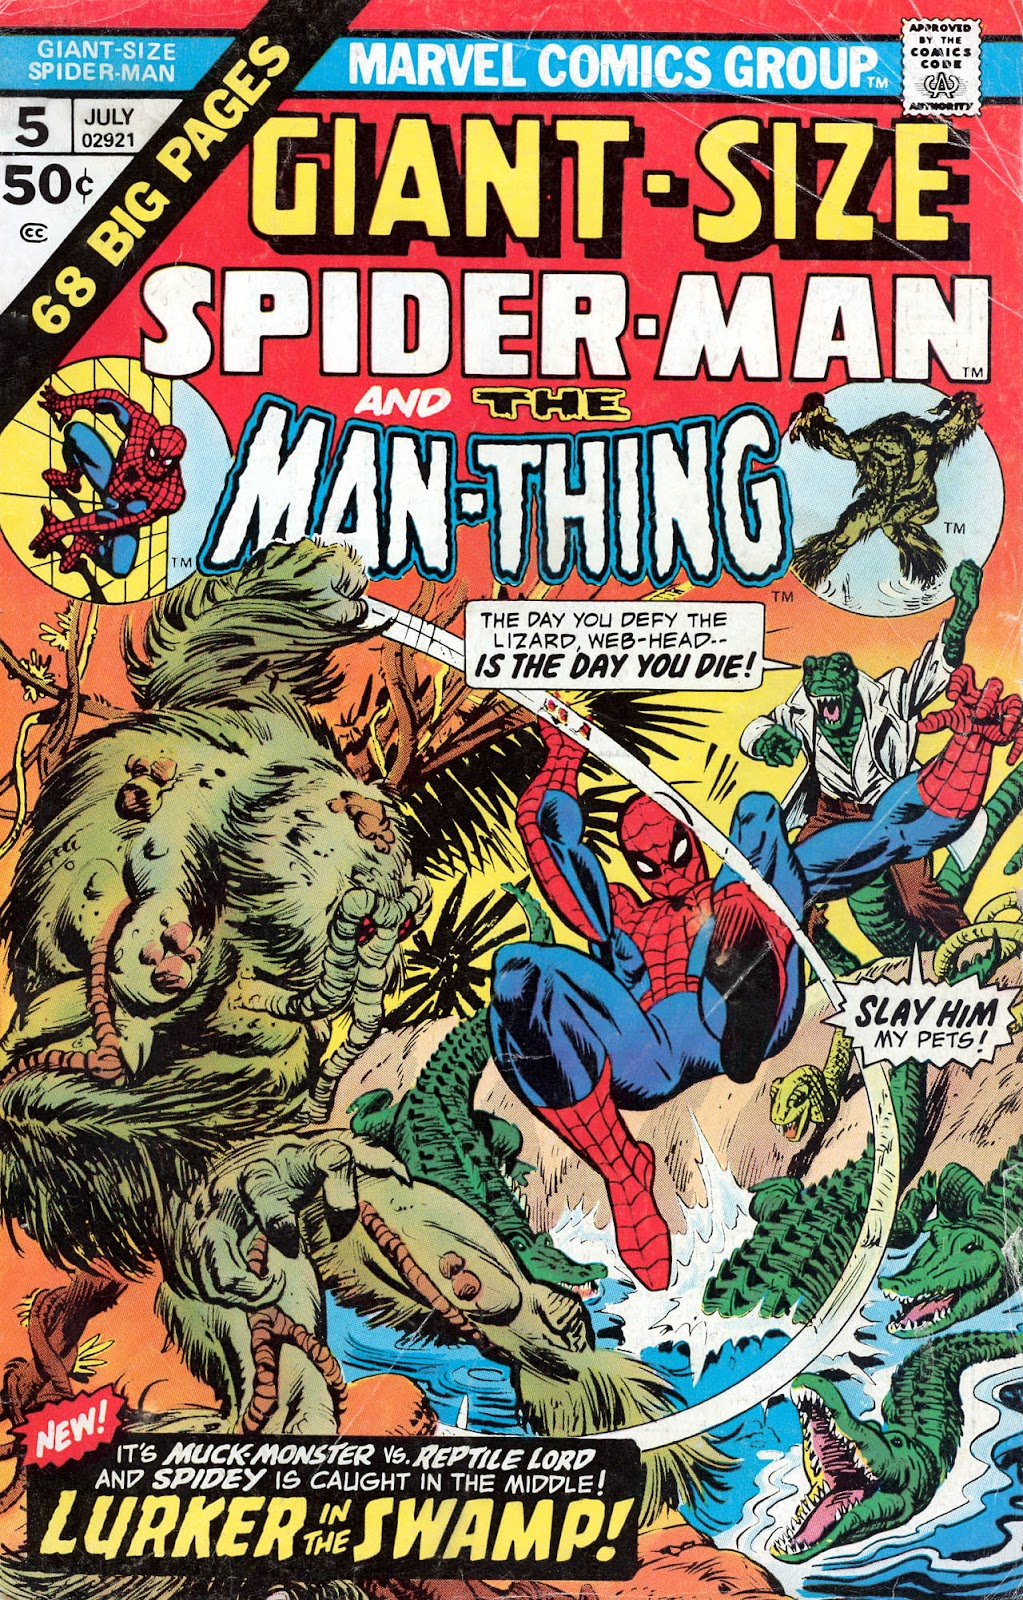 Giant-Size Spider-Man (1974) issue 5 - Page 1